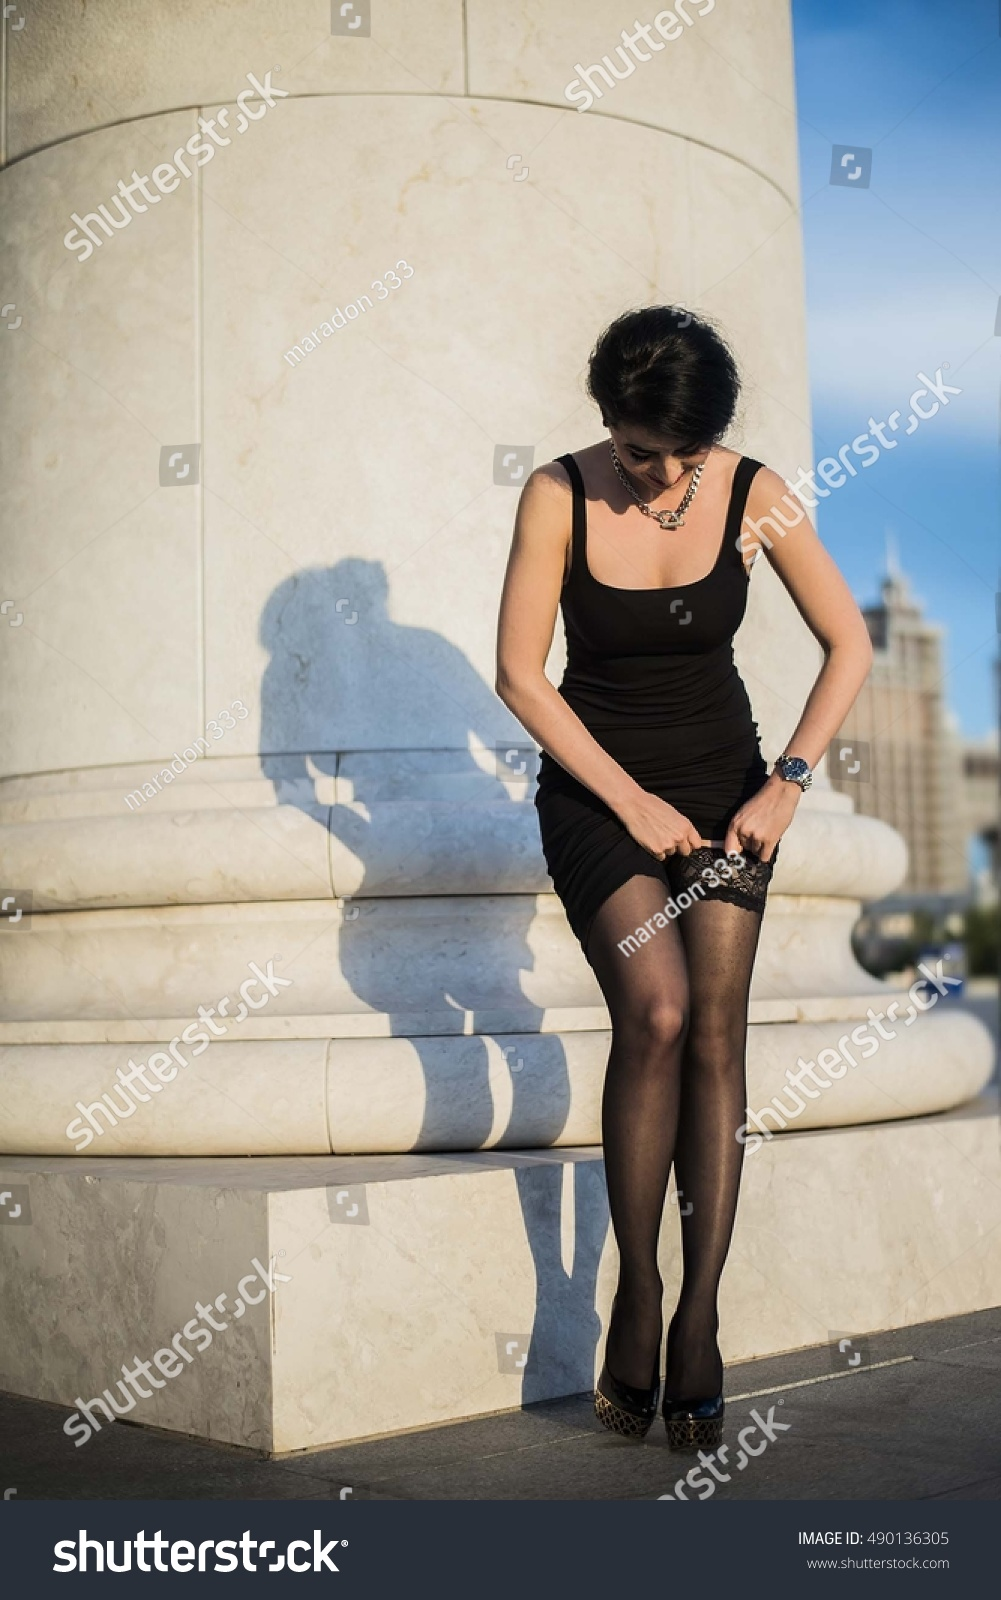 aa22d9d15d6 sexy legs with short black skirt. sexual full length asian woman tightens  nylon lace tights. Slim long legs. fatal young female wear dark clothes -  Image